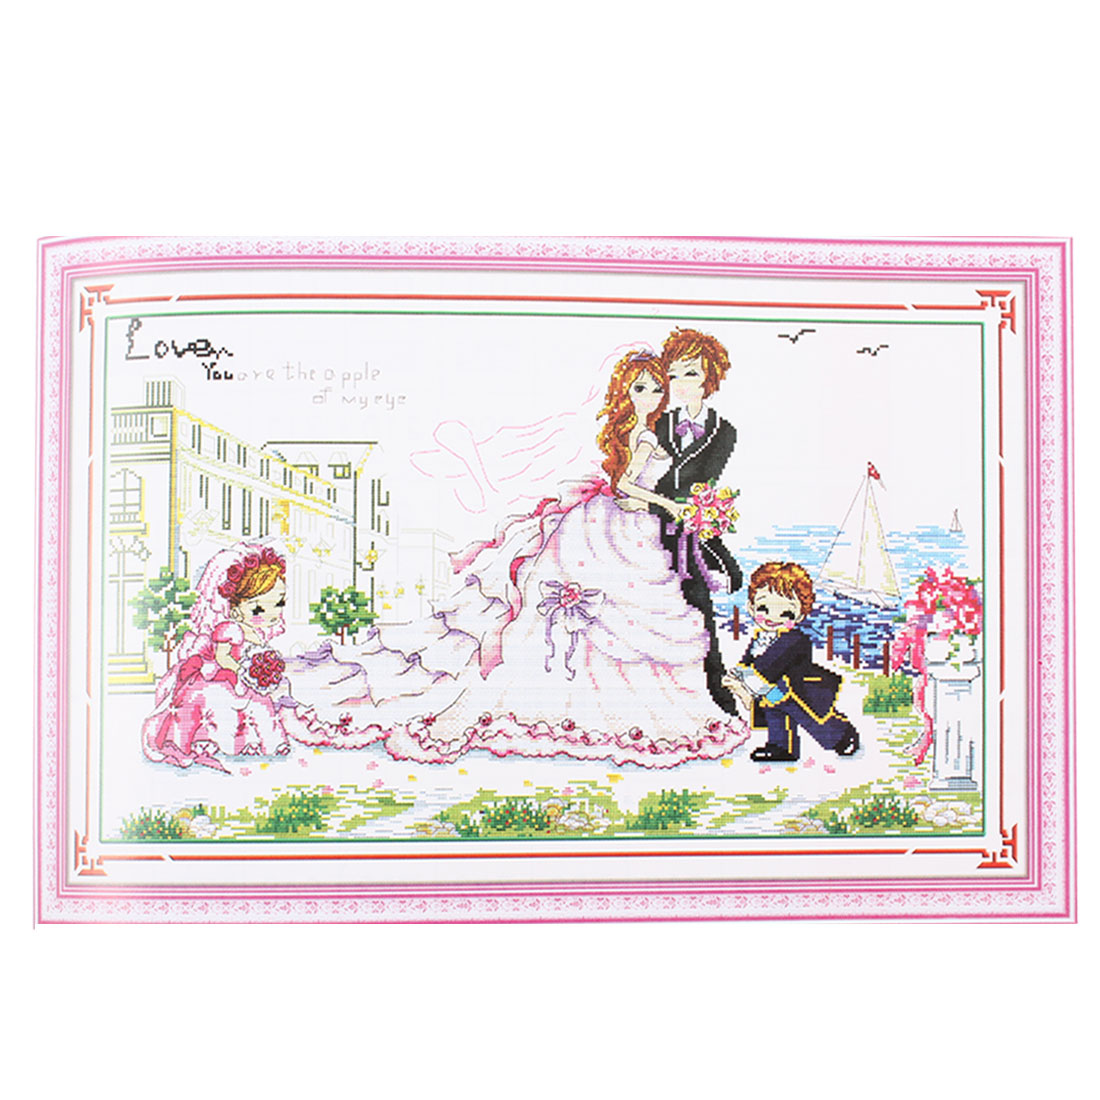 Romatic Wedding Pattern Stamped Cross Stitch Counted Kit for Ladies Women